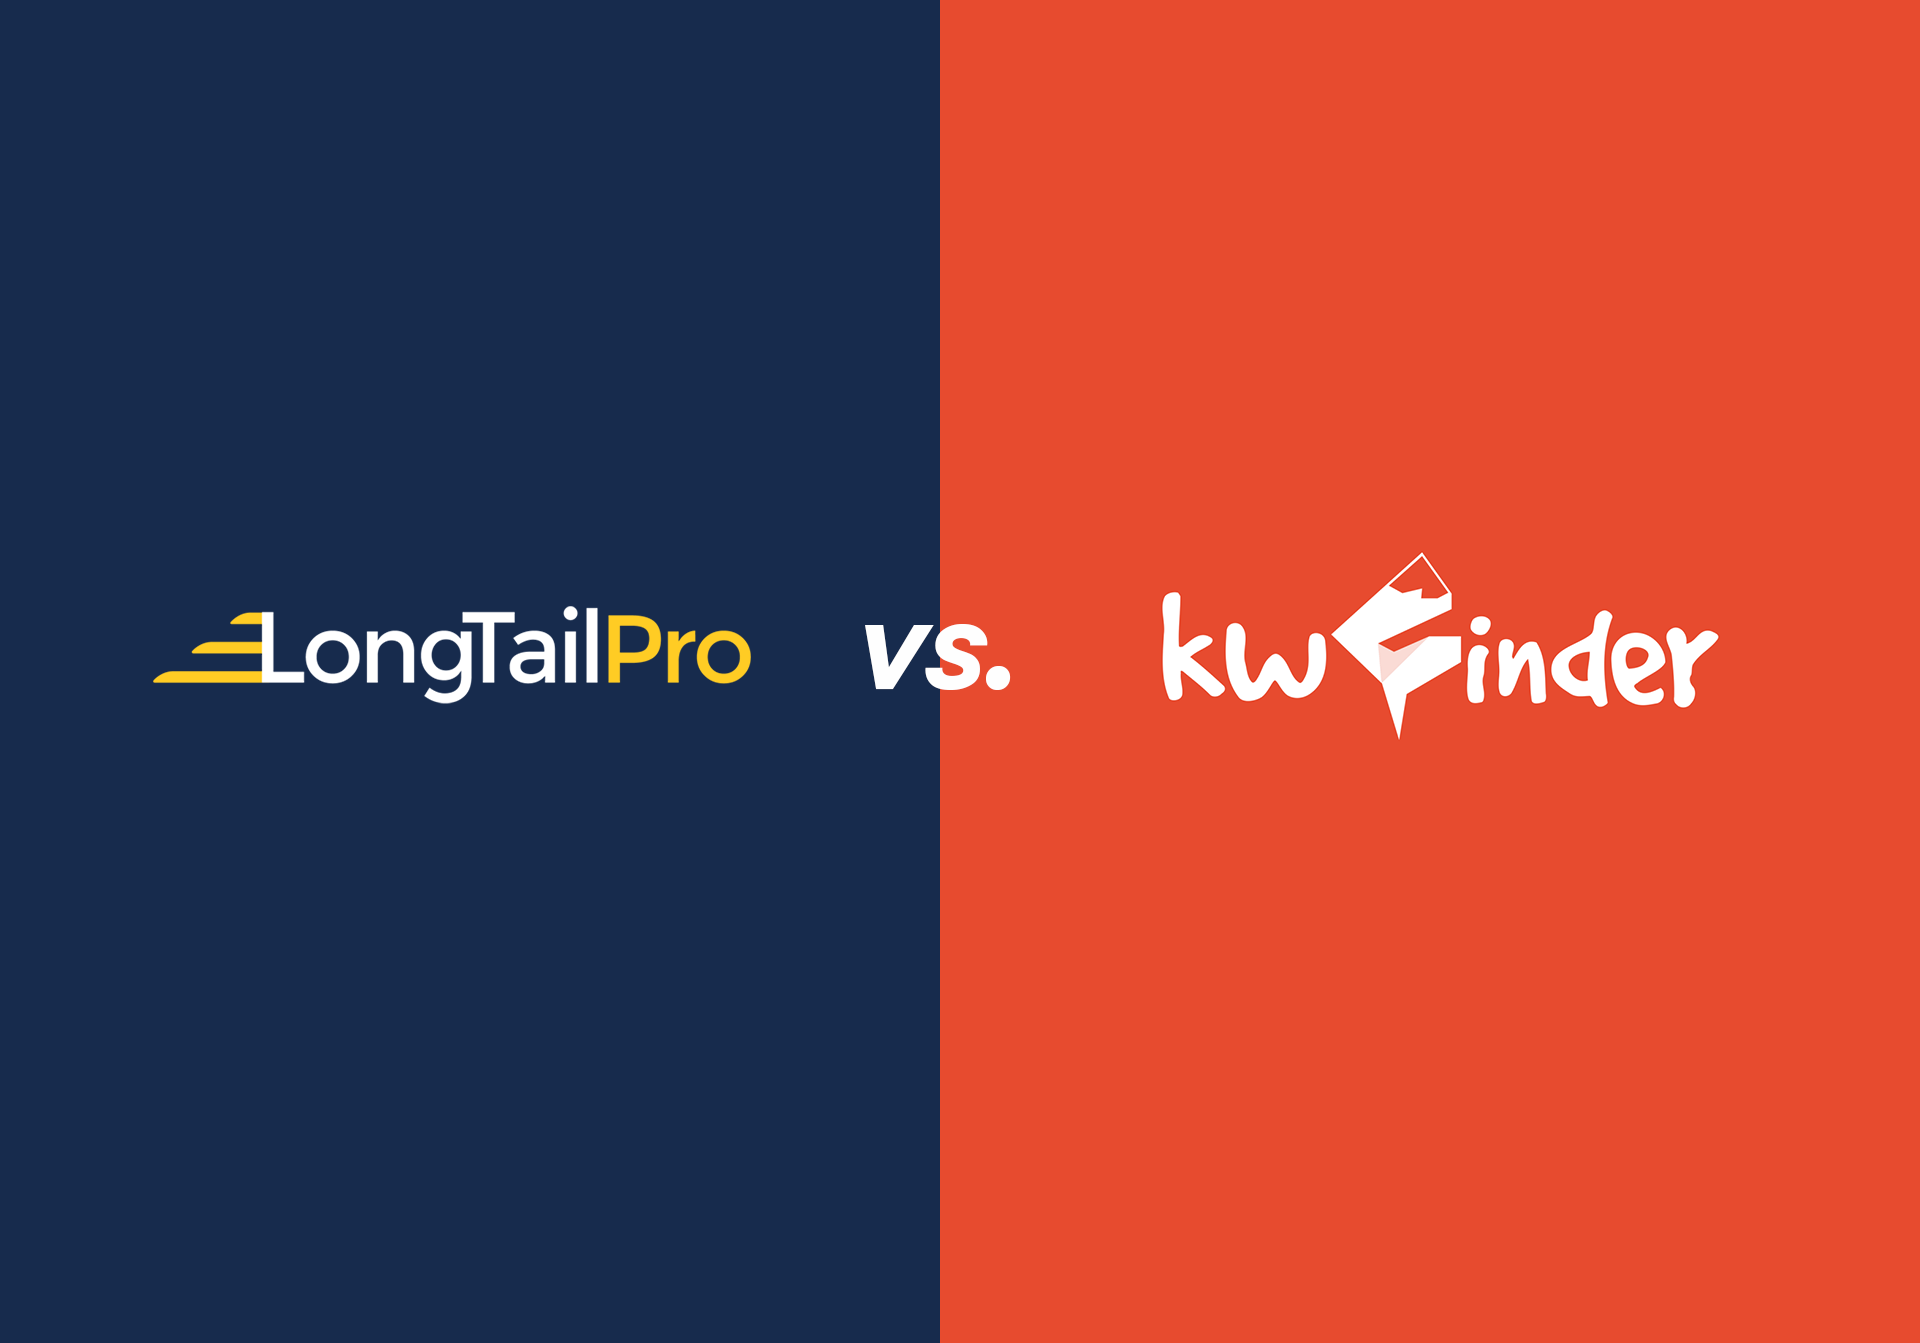 LongTailPro vs. KWFinder Review - Which One Is Better? 1